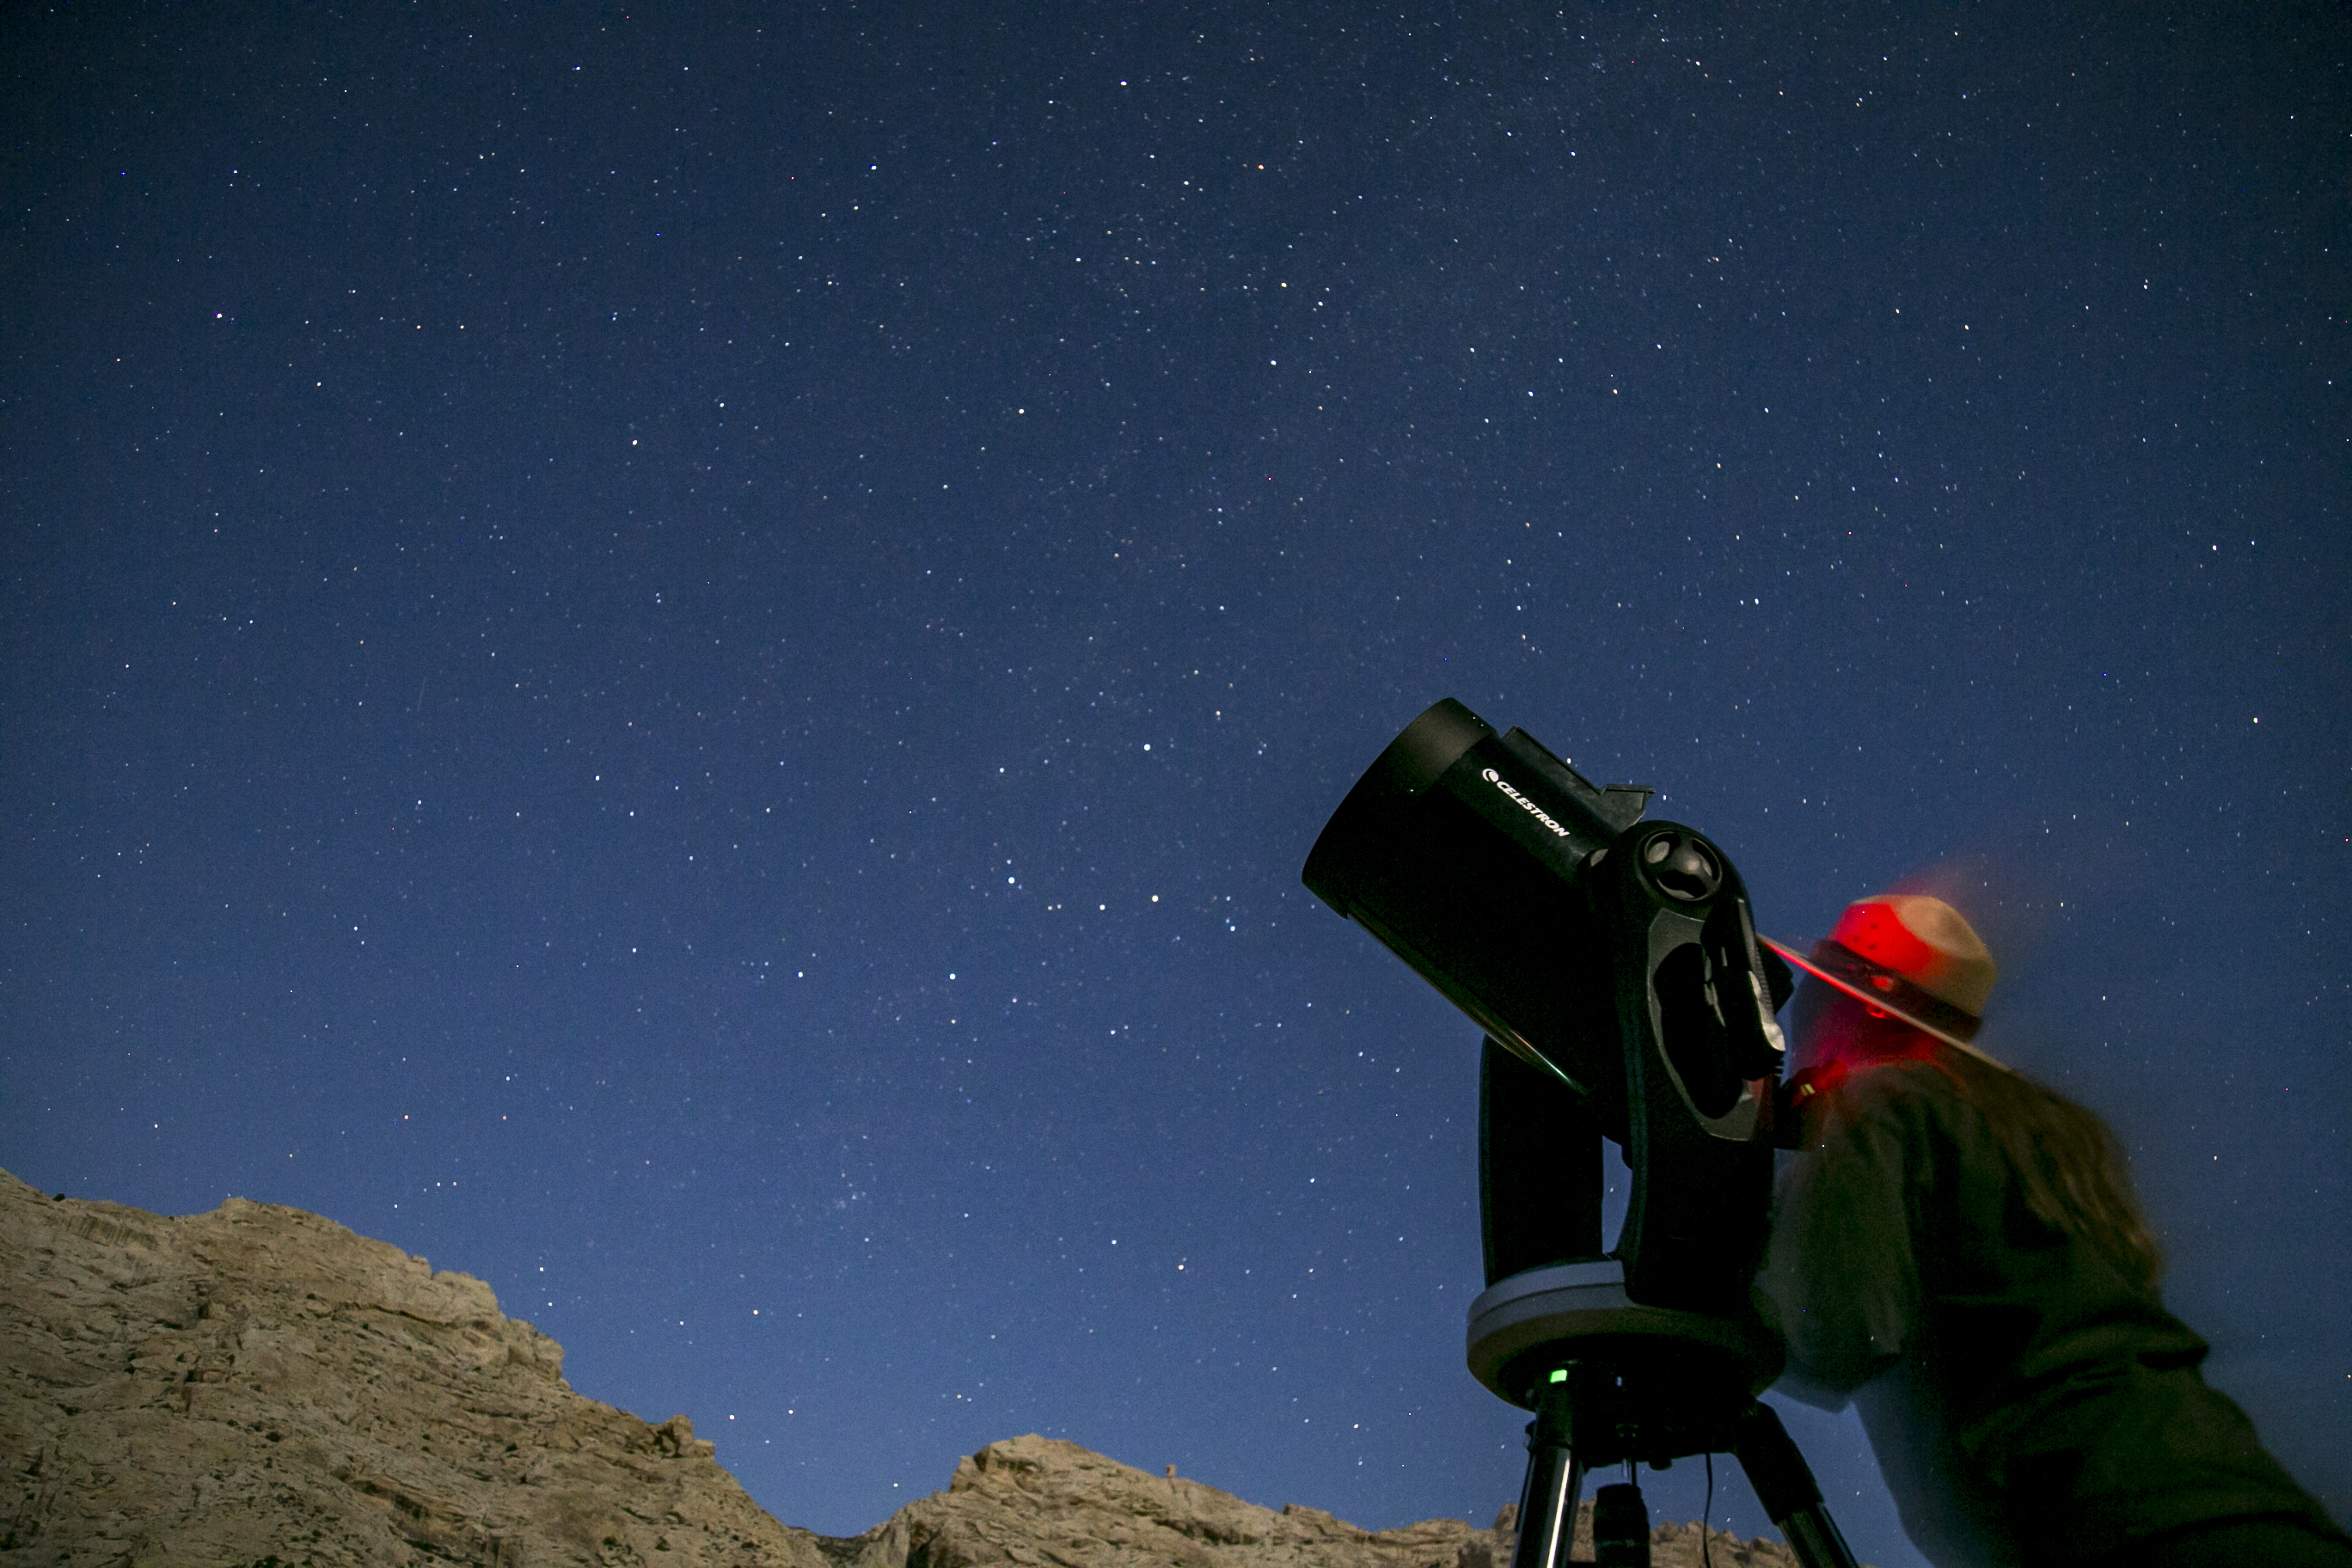 A park ranger looks through a telescope at stars sparkling over the rocks of Split Mountain.